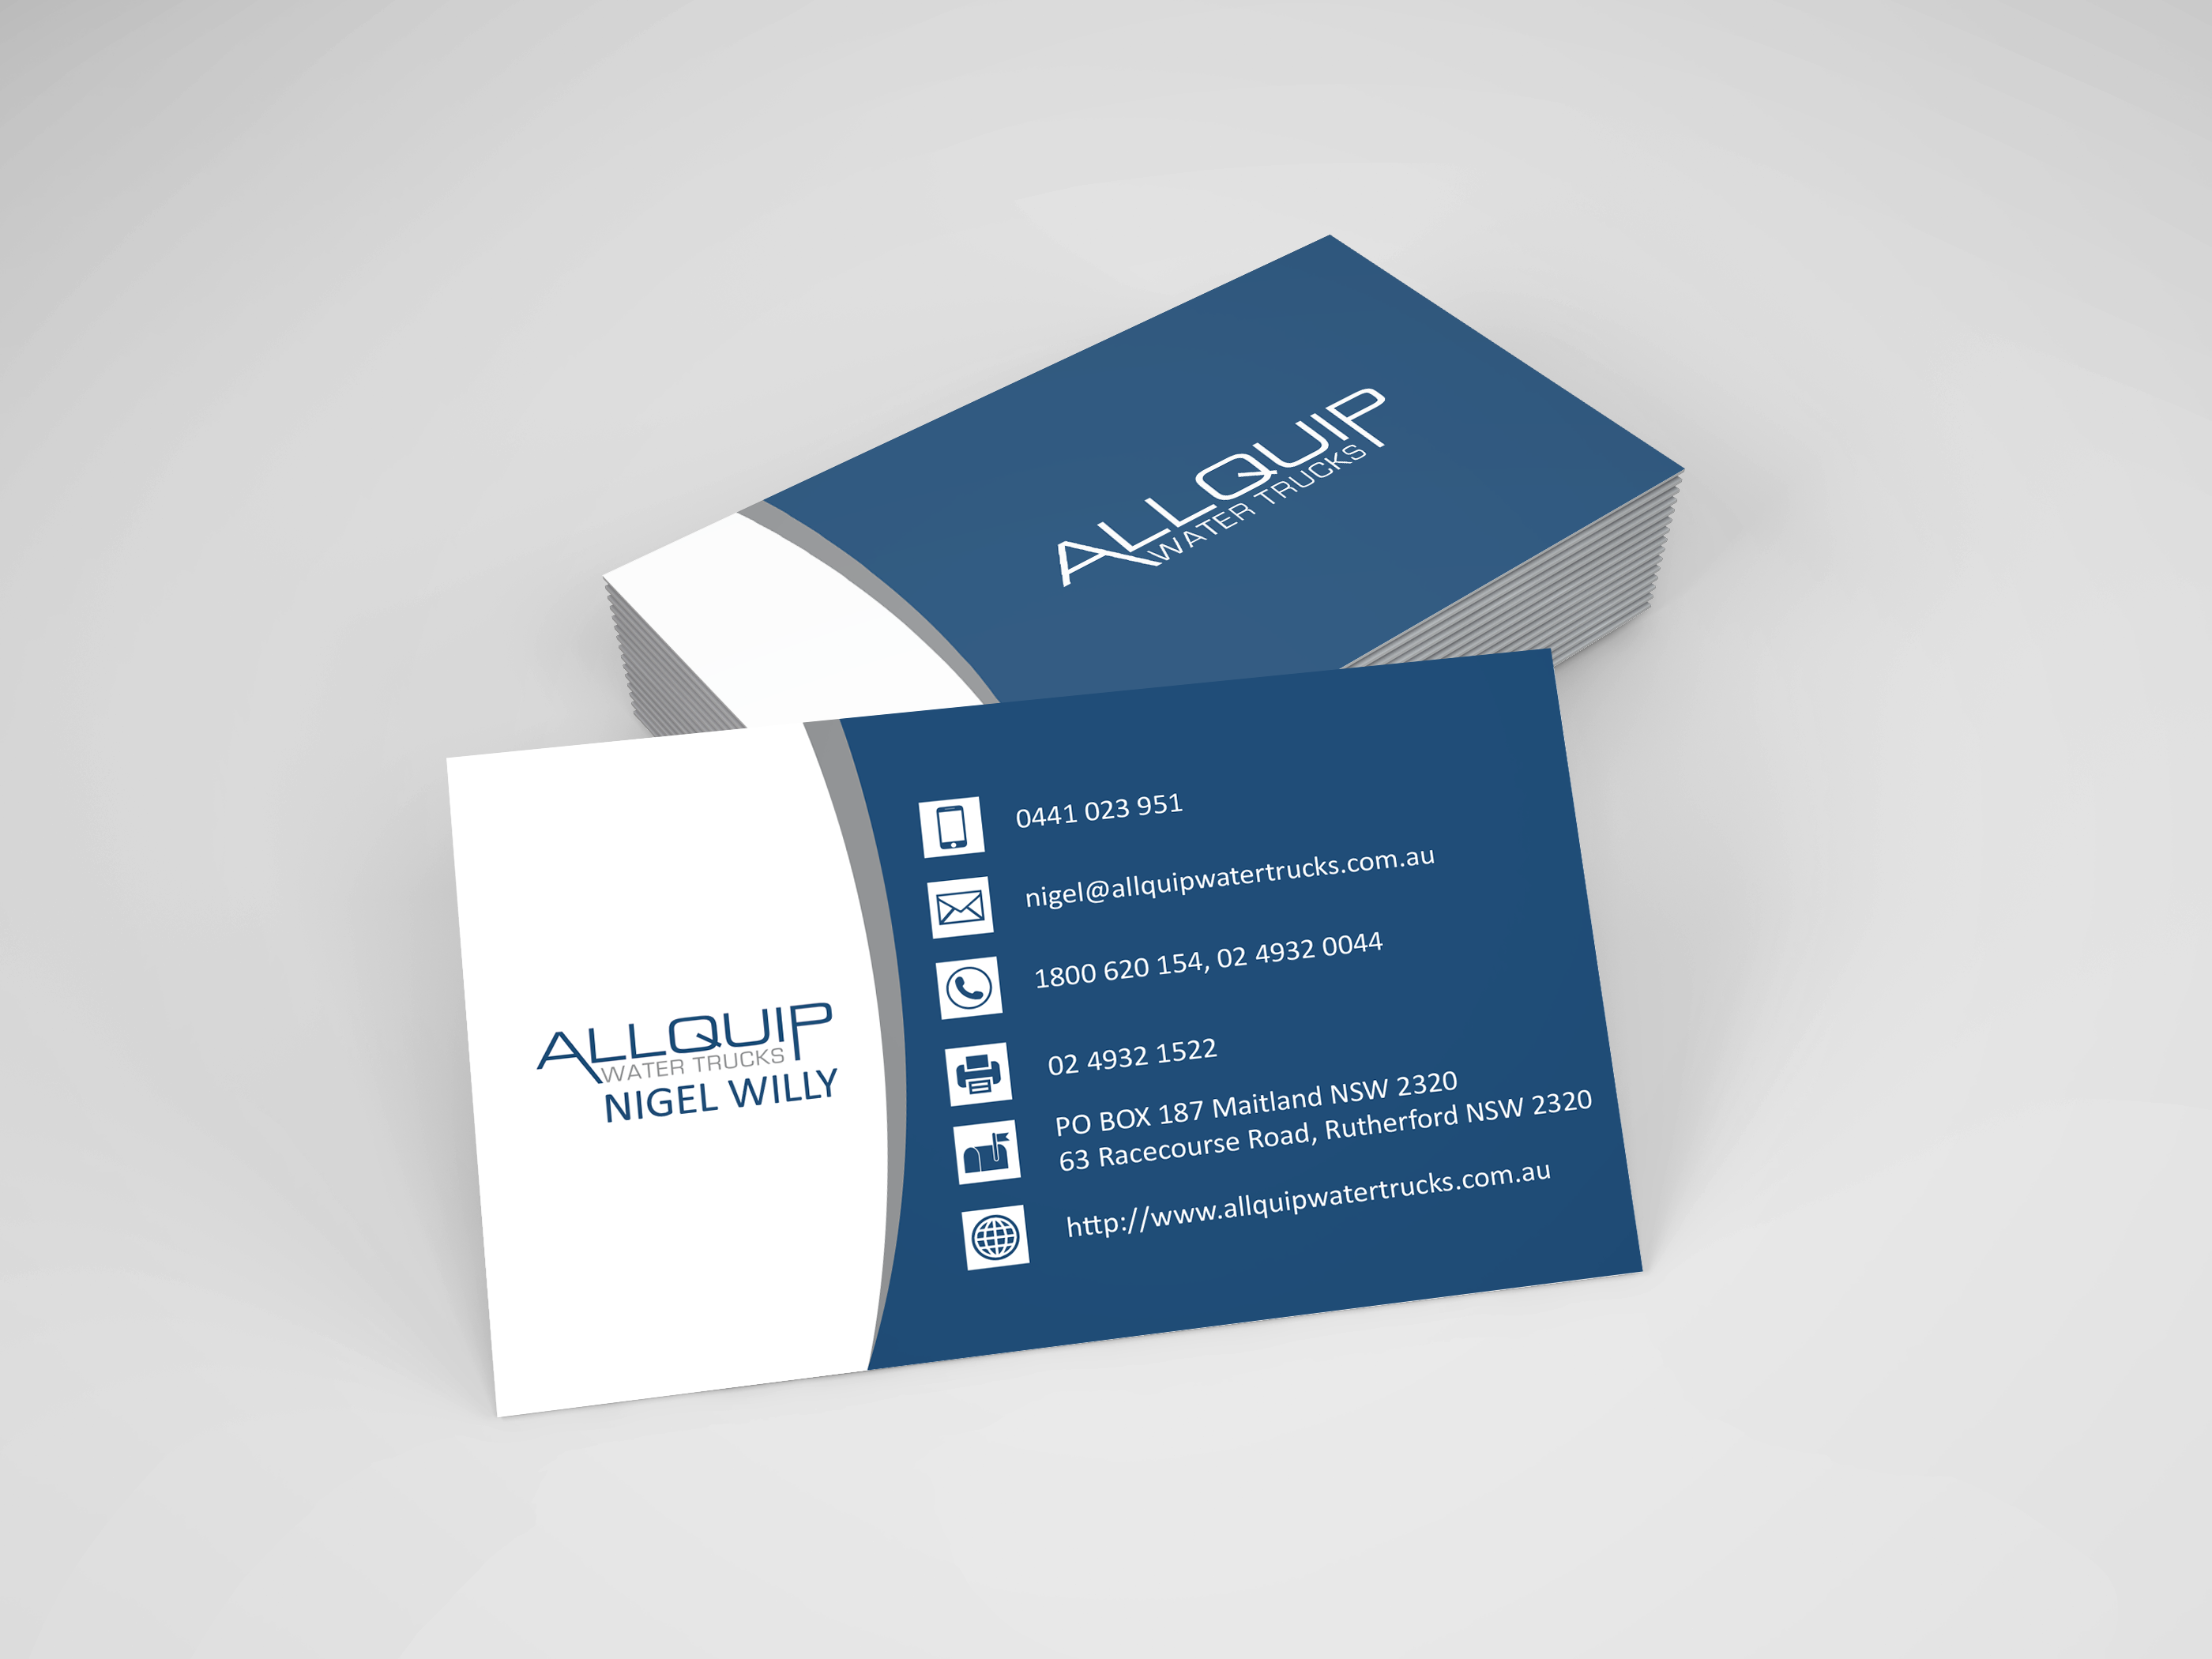 Business Cards Design Contest Choice Image - Card Design And Card ...